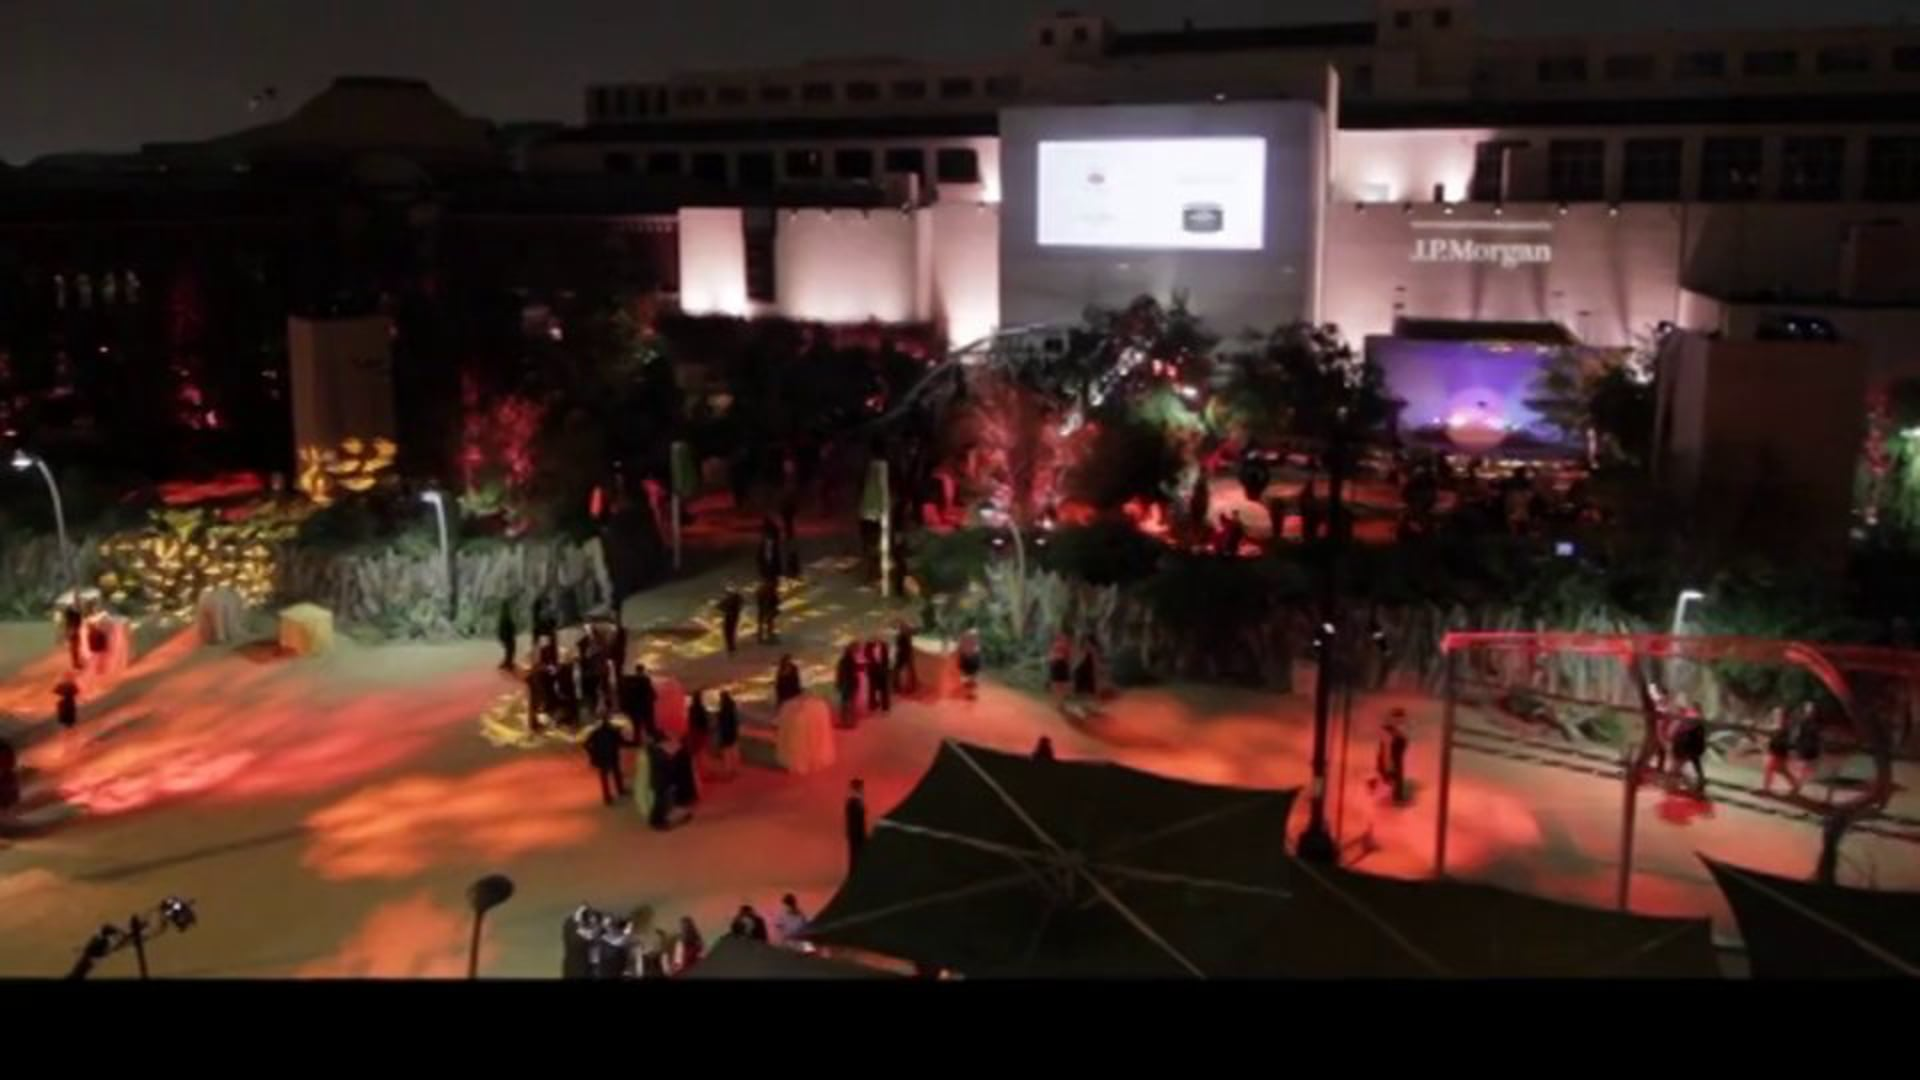 Production Elements, Inc. - 2013 Natural History Museum Exterior Projection Sizzle Reel